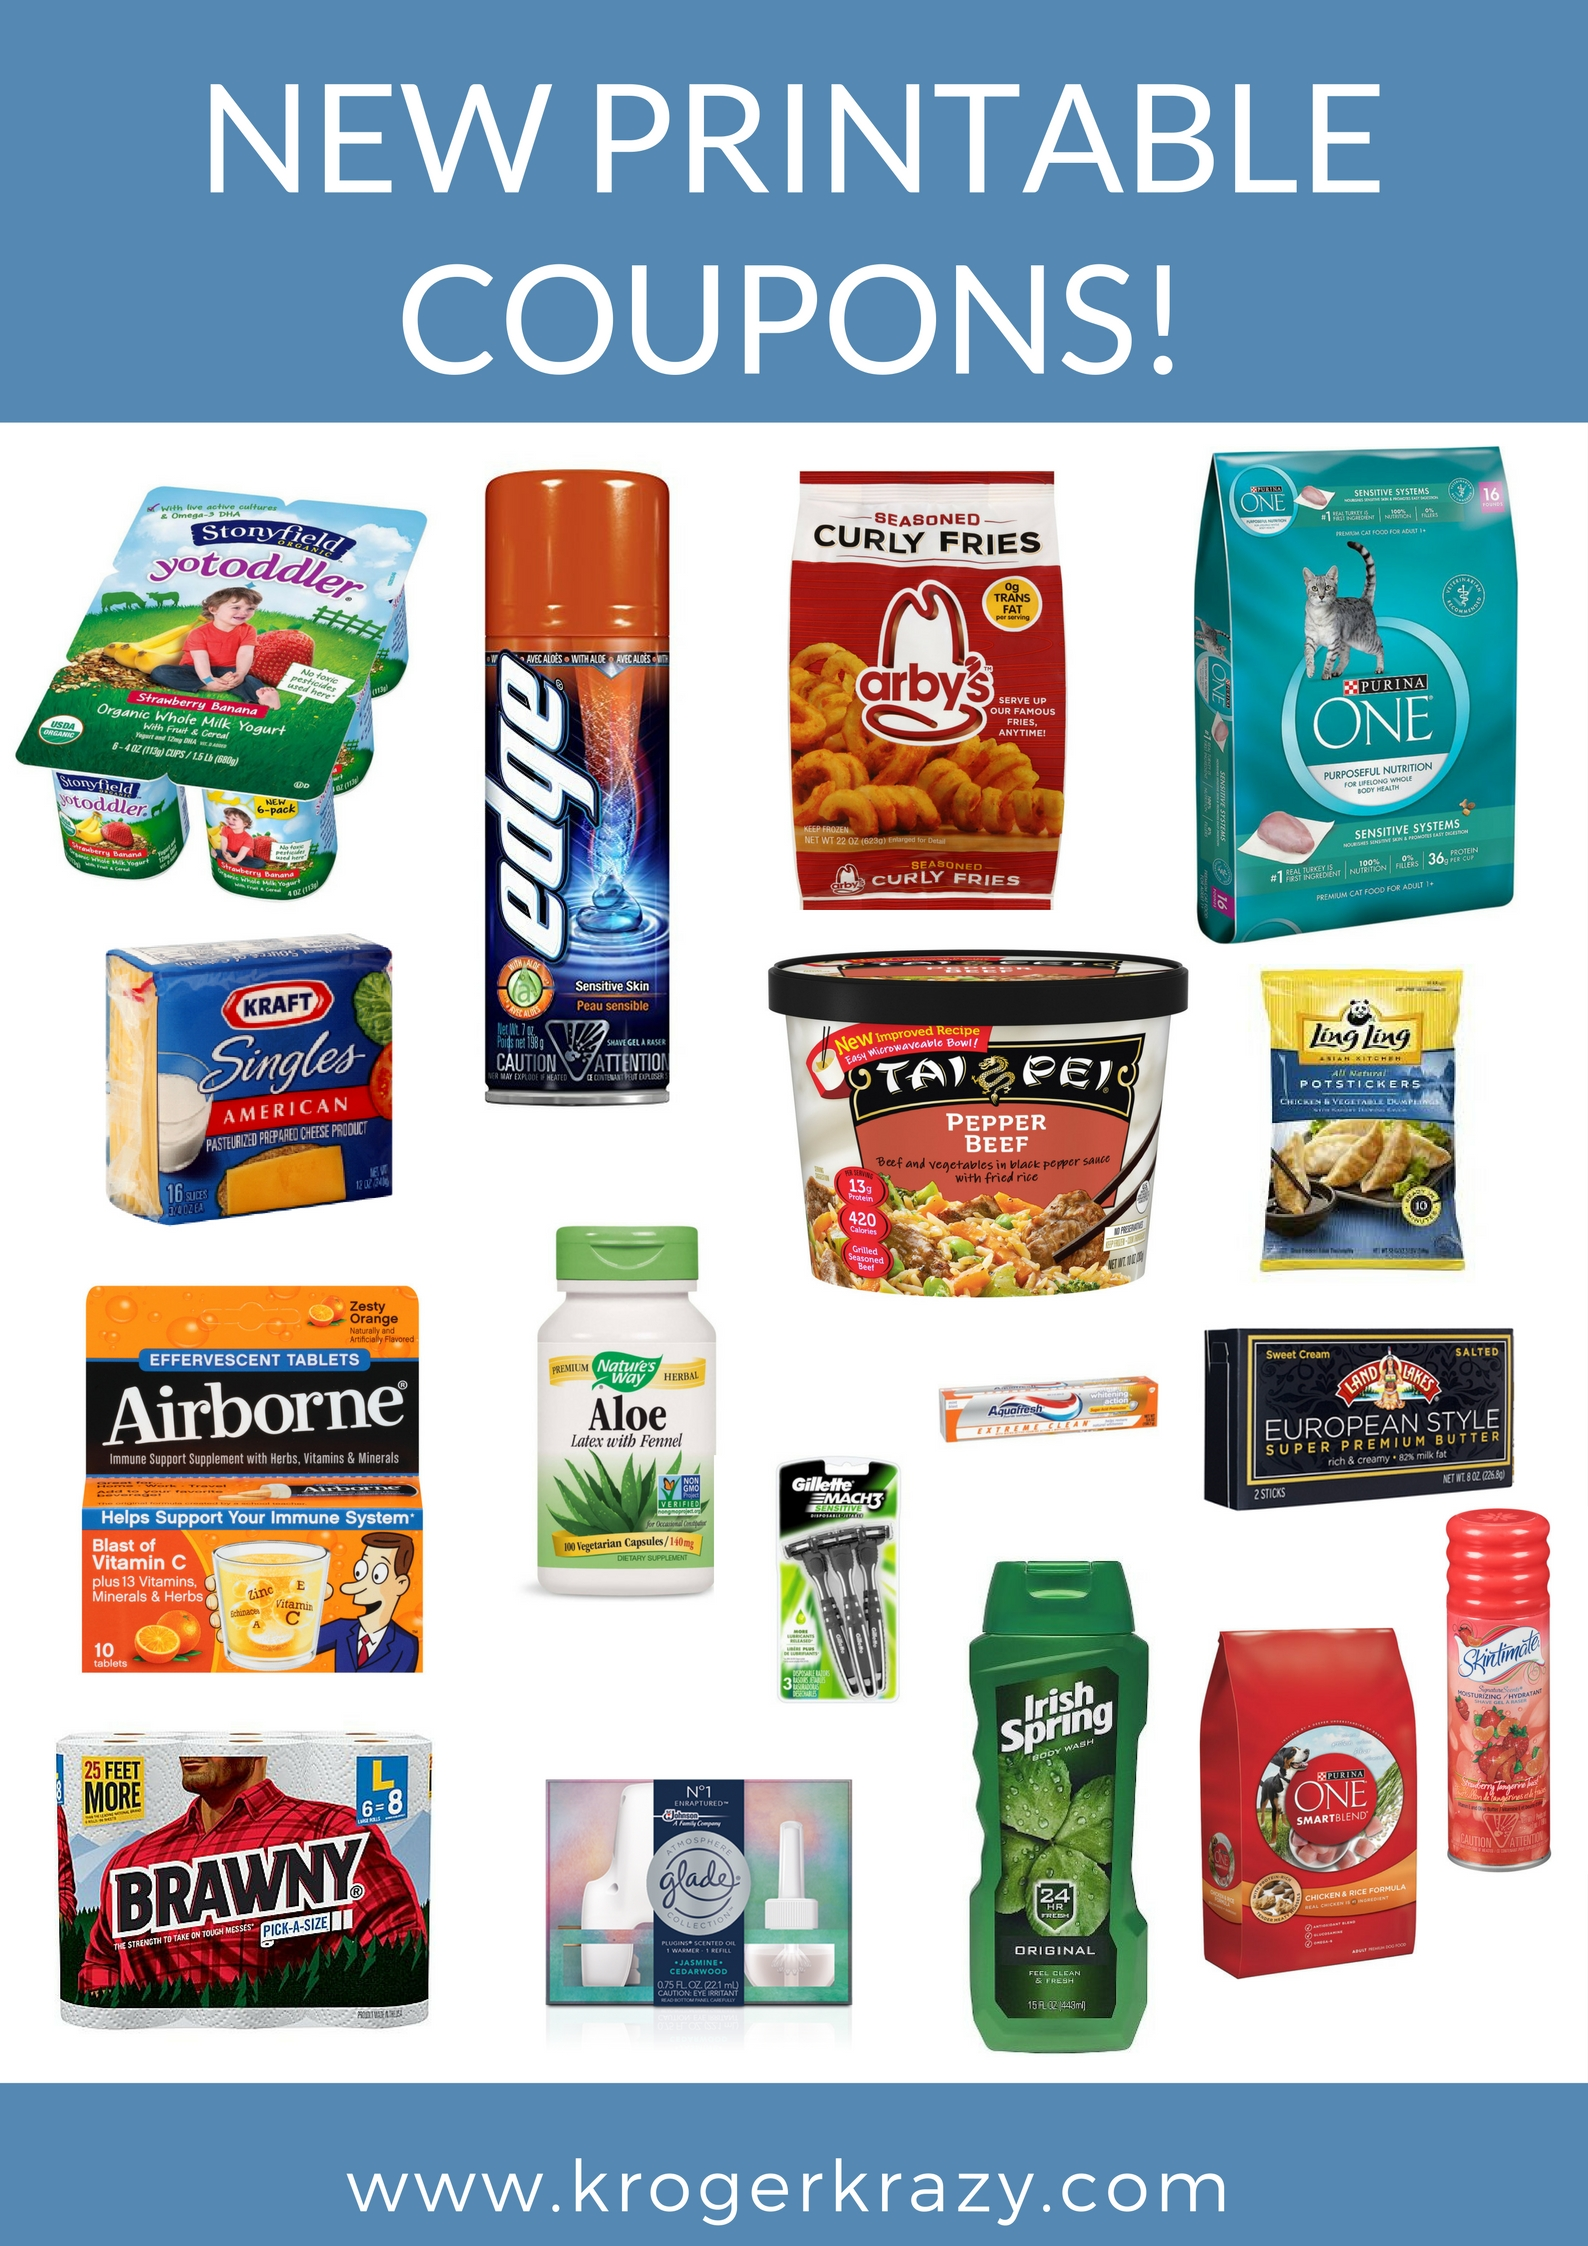 photograph relating to Gillette Printable Coupon named Refreshing Printable Discount coupons! Purina, Gillette, Land O Lakes, Glade